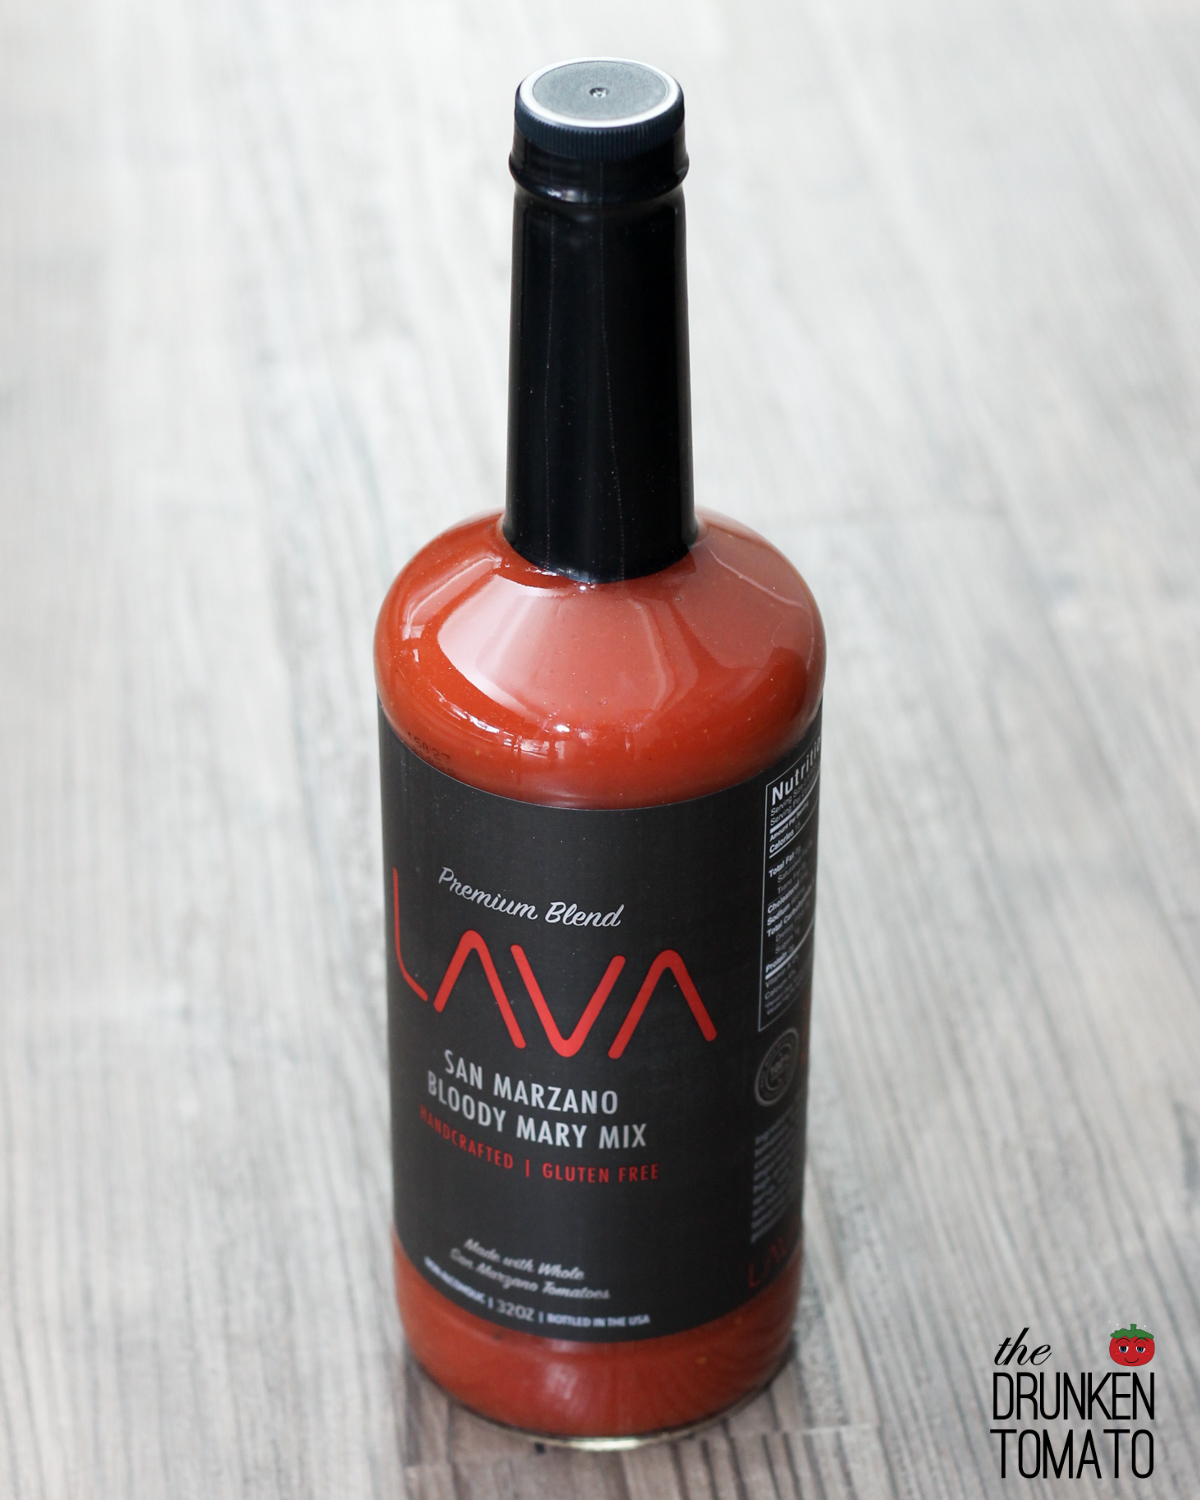 Lava Bloody Mary Mix